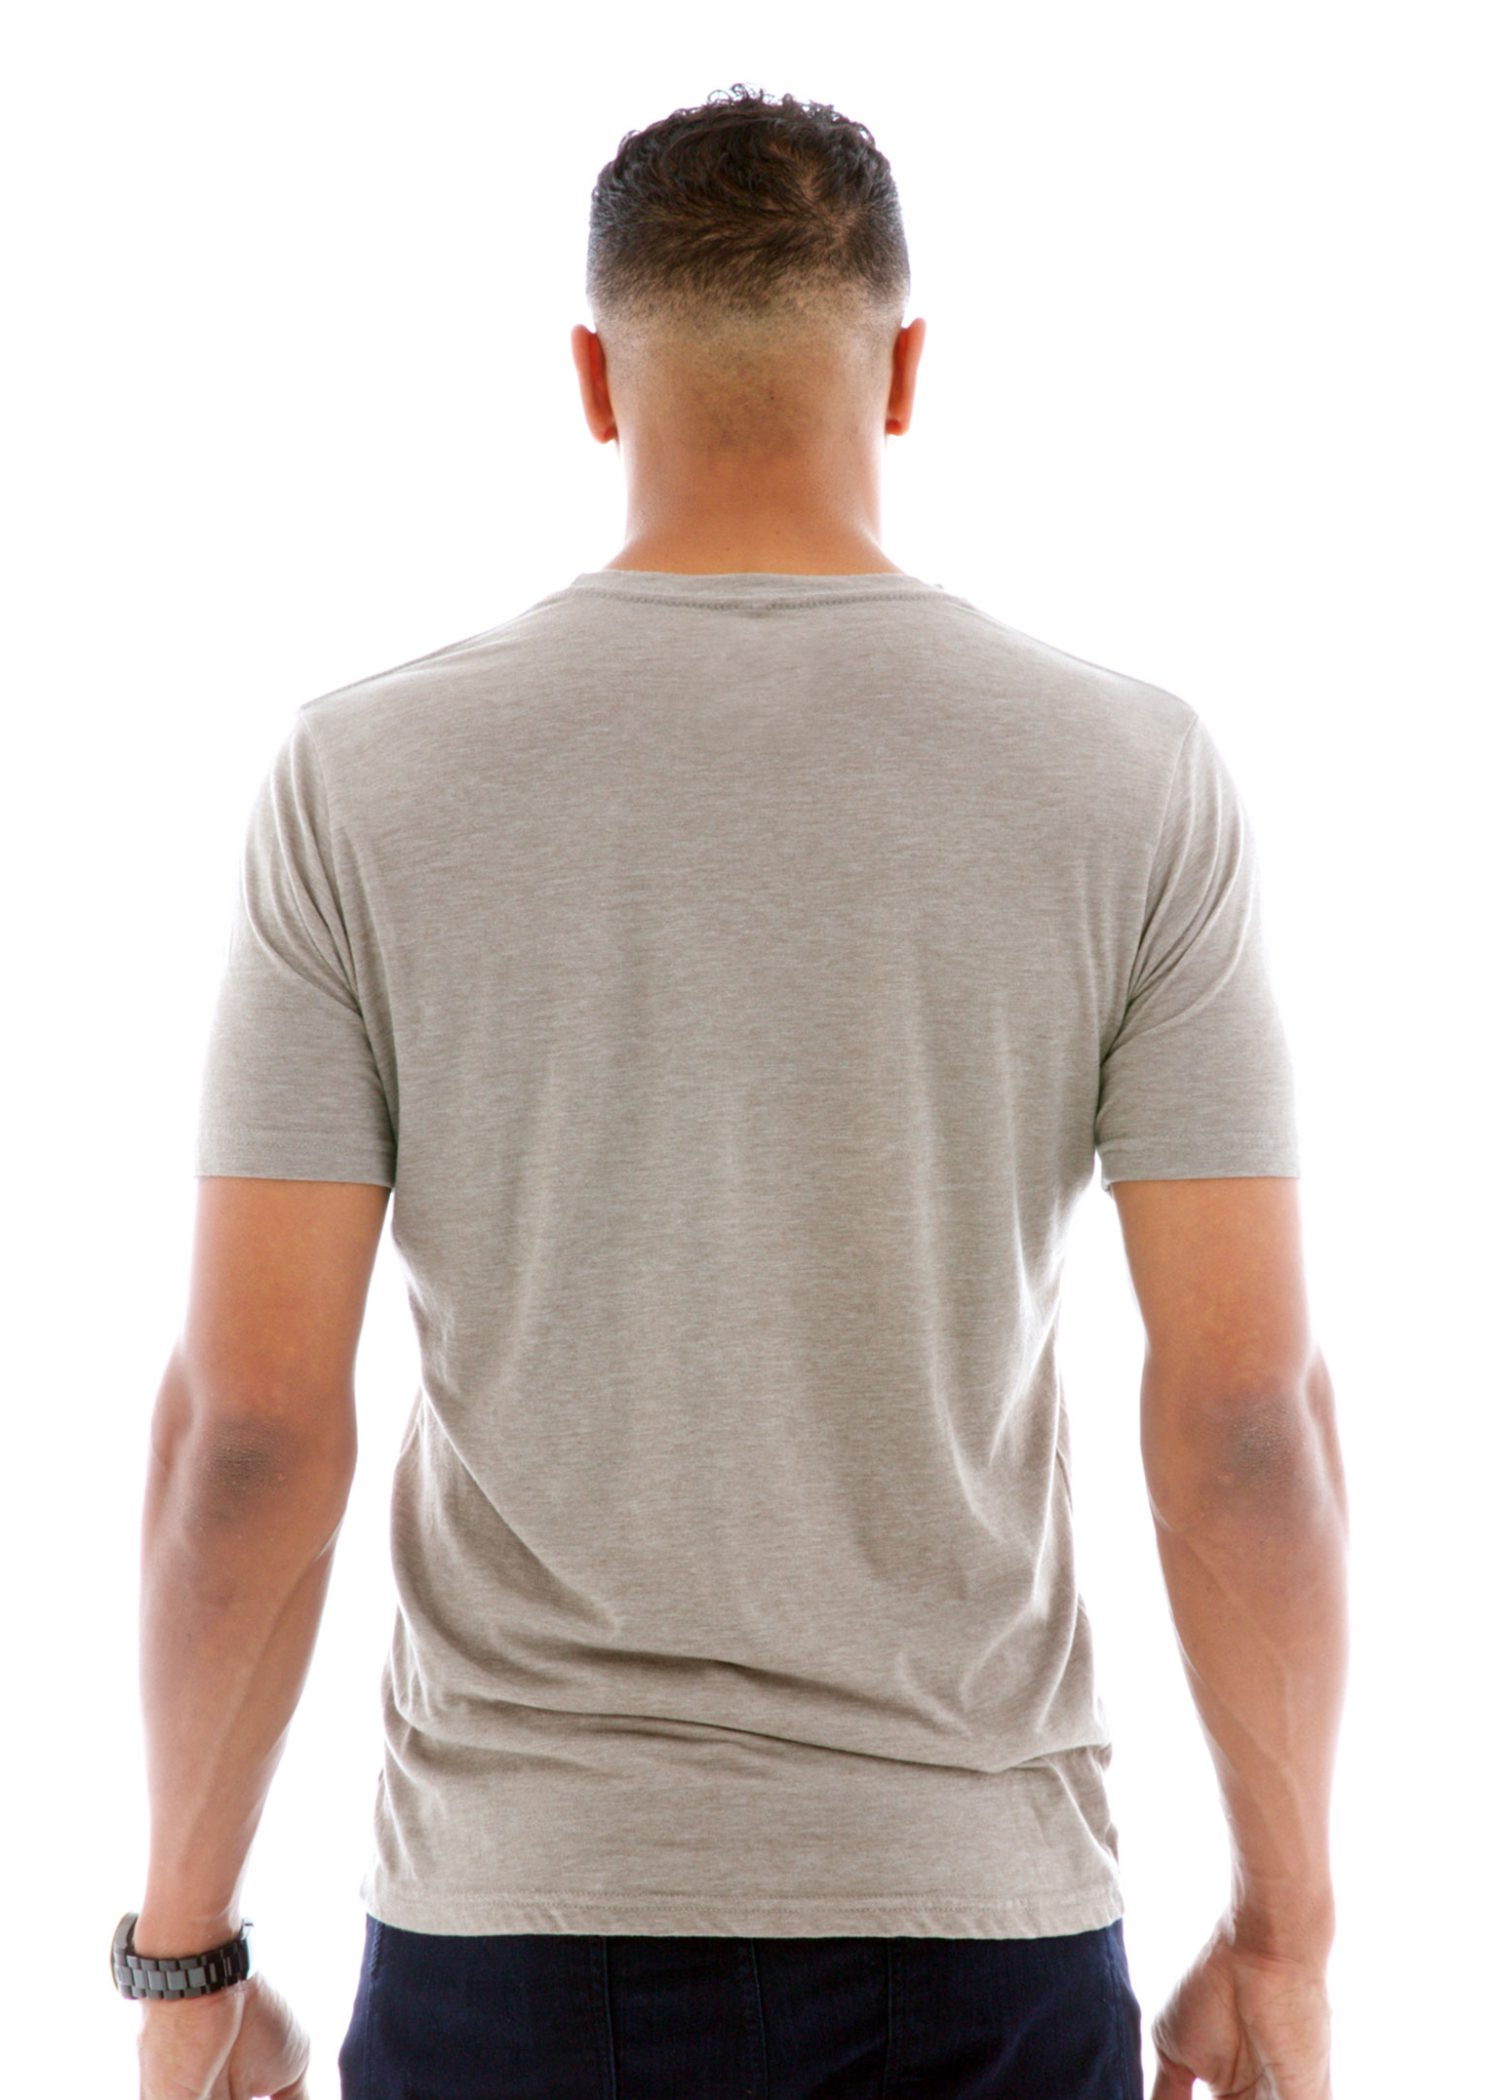 Men's Premium Heathered Crew Short Sleeve T-Shirt